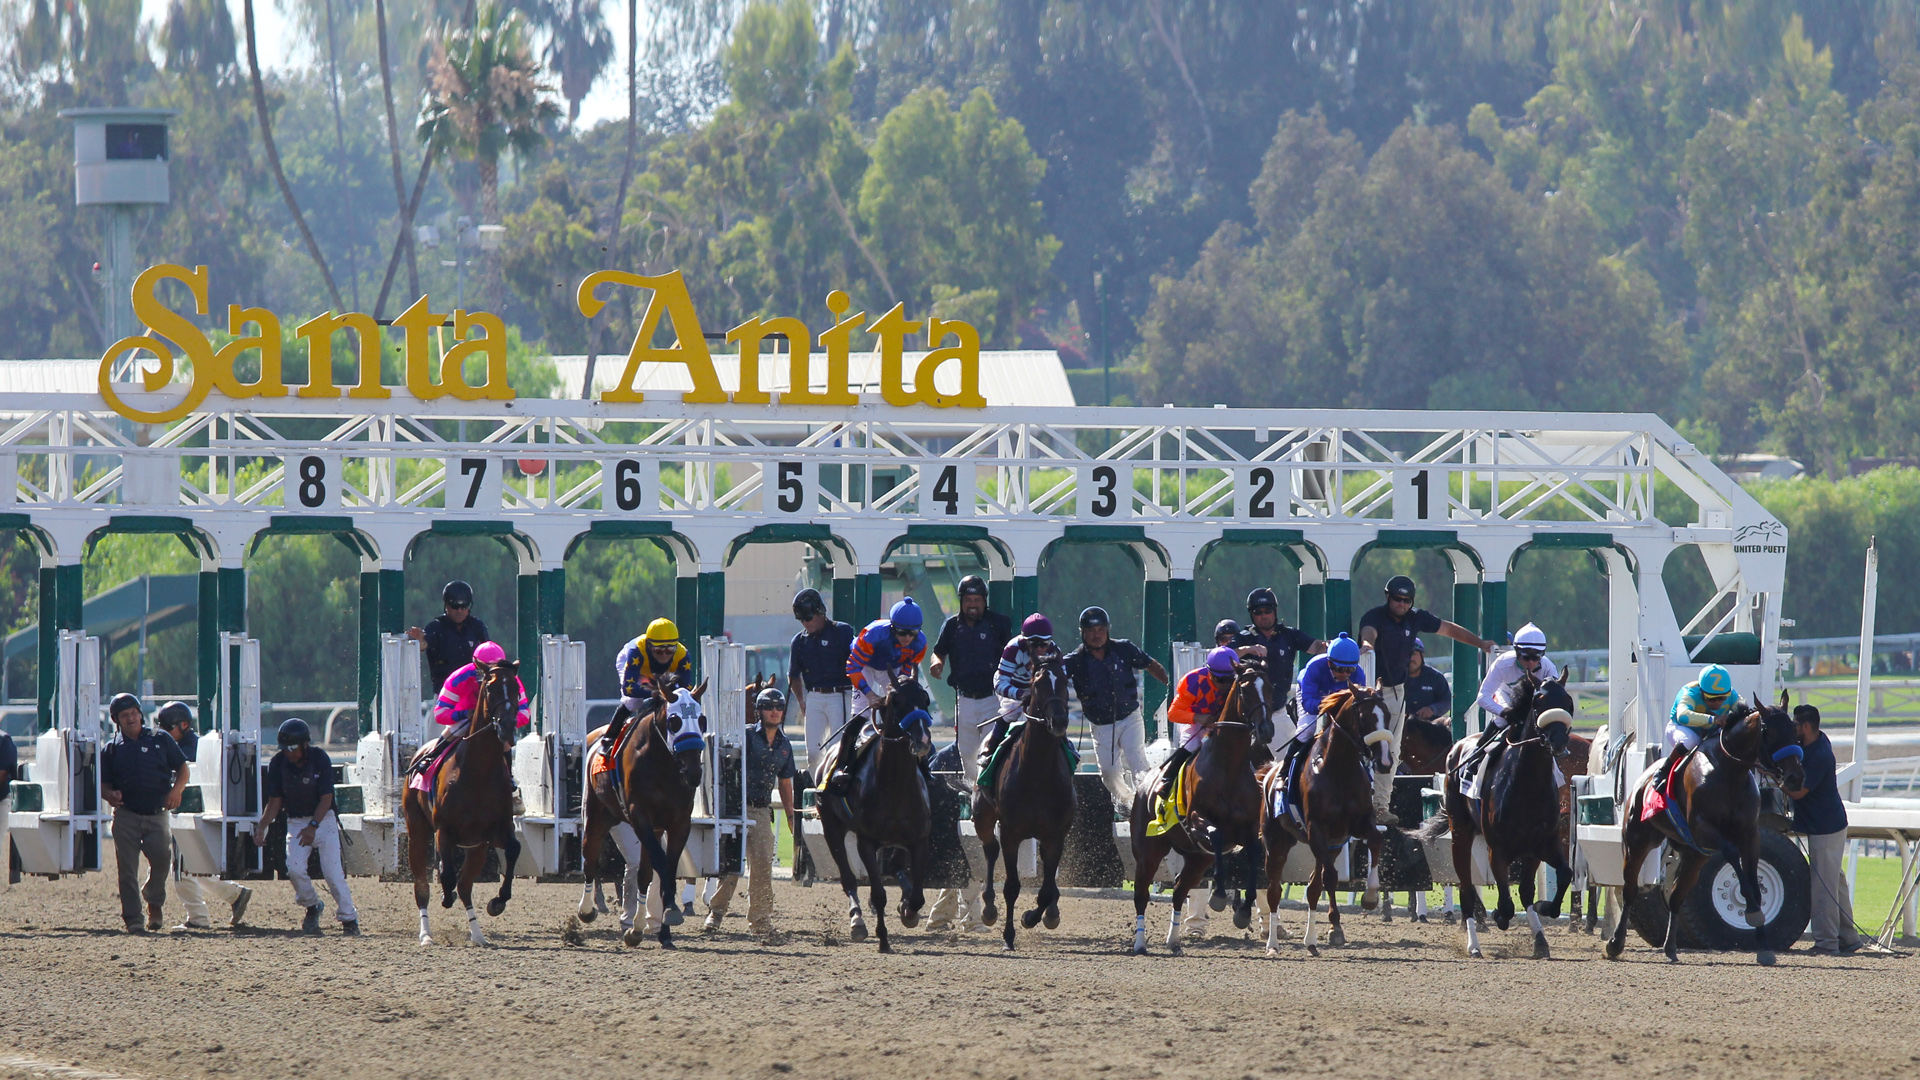 Jeff Siegel's Blog: Santa Anita Analysis for May 22, 2016